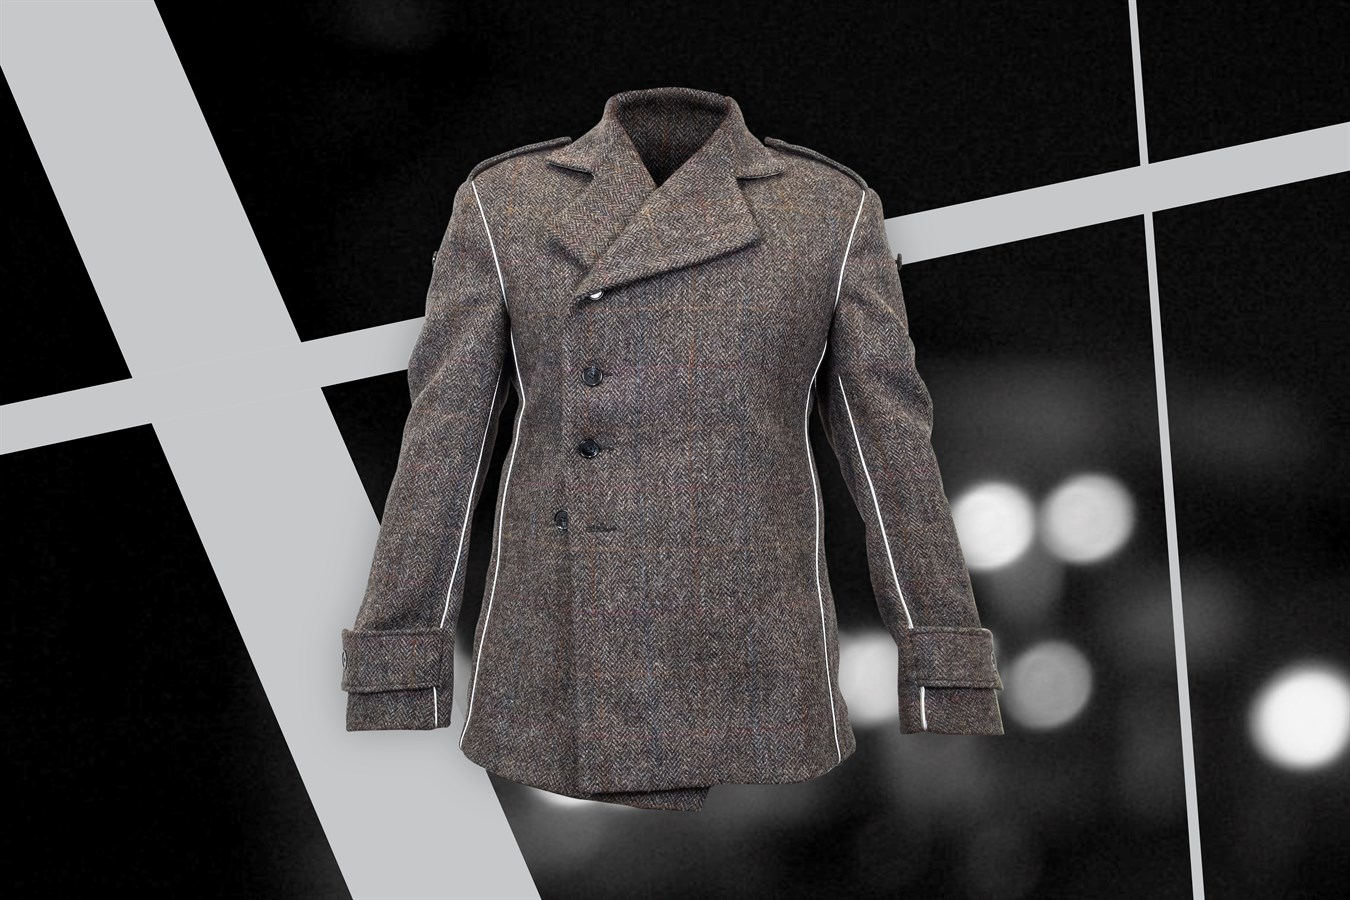 Volvo Safety Jacket - design prototype in collaboration with London College of Fashion, UAL